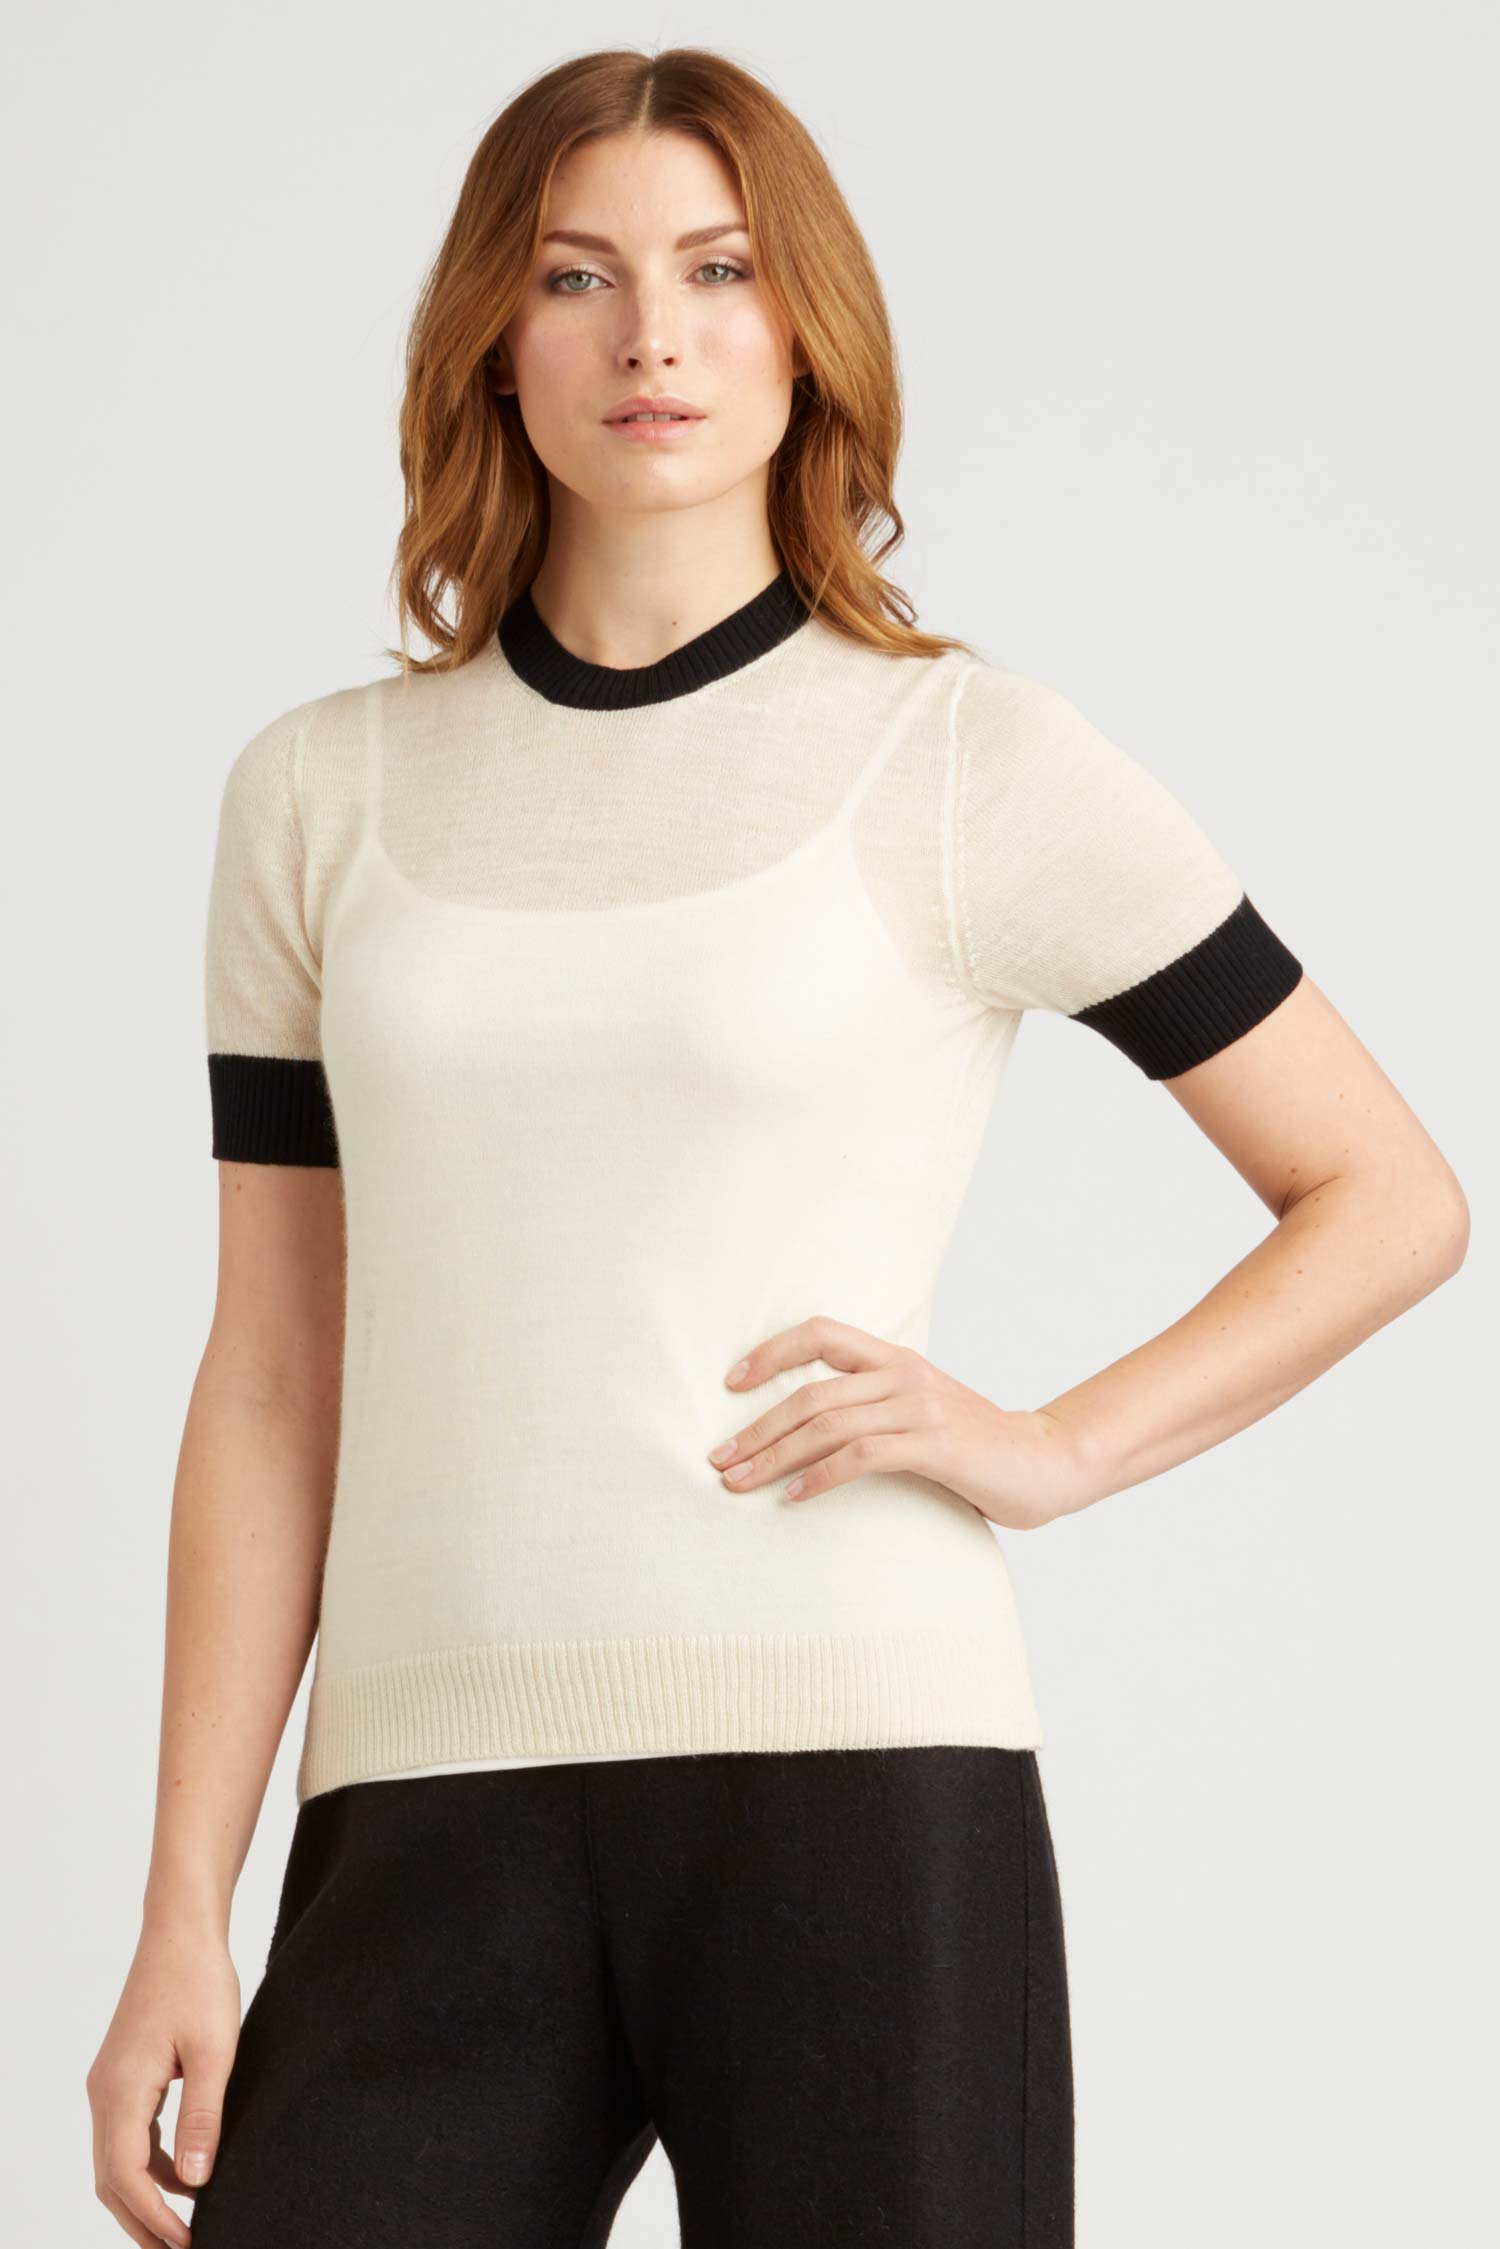 Womens Top | Sheer Alpaca Silk Tee | Ivory Black